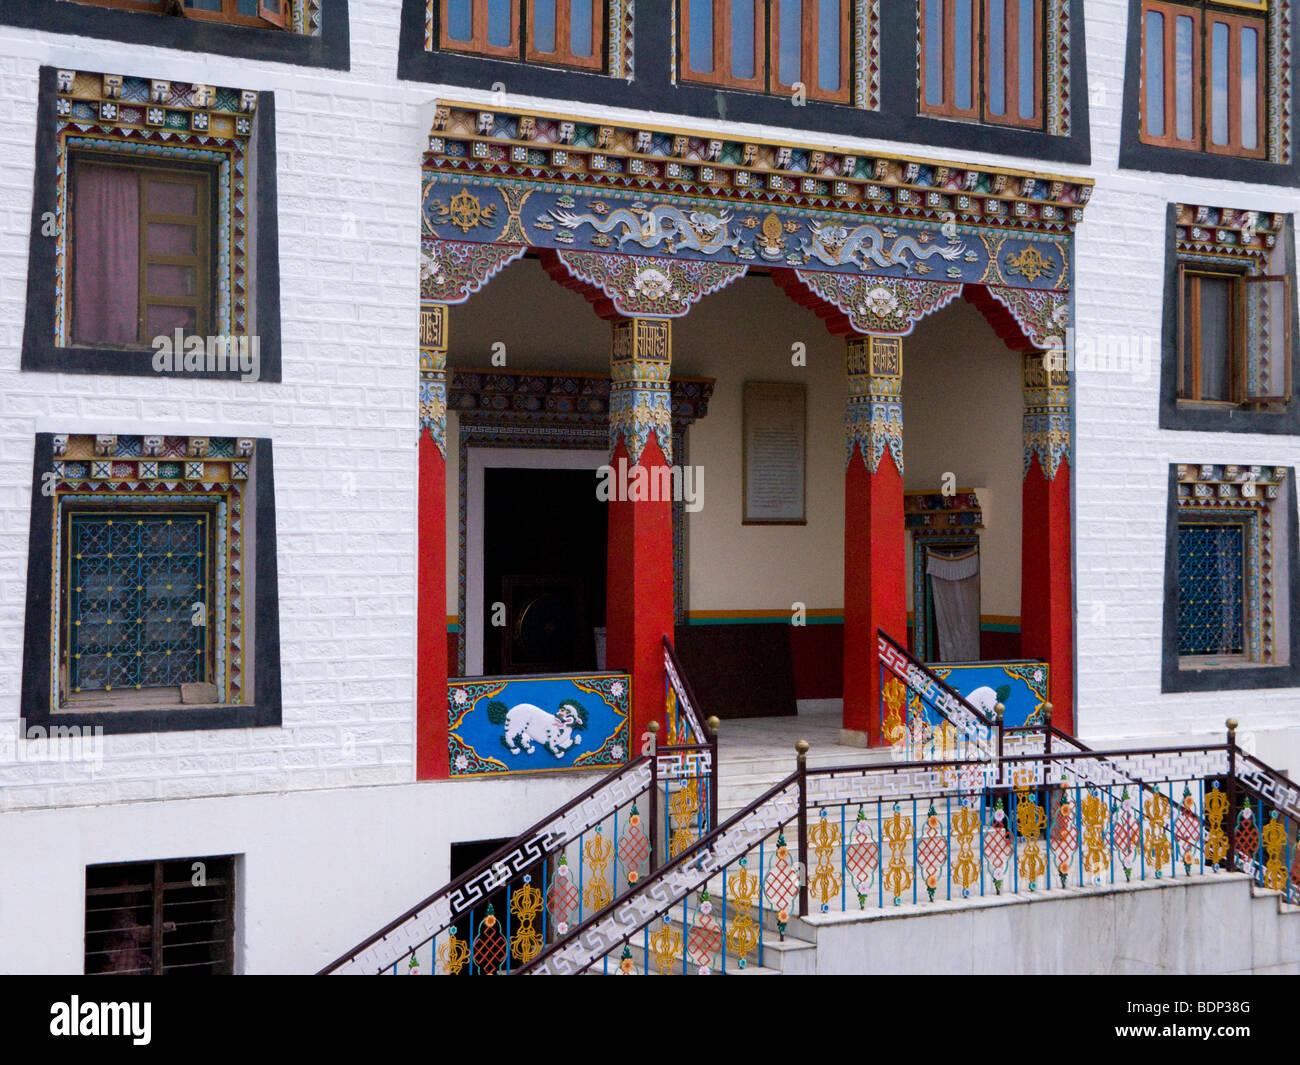 The front and entrance entrance of the Zigar Drukpa Kargyud Institute. Rewalsar. Himachal Pradesh. India. - Stock Image